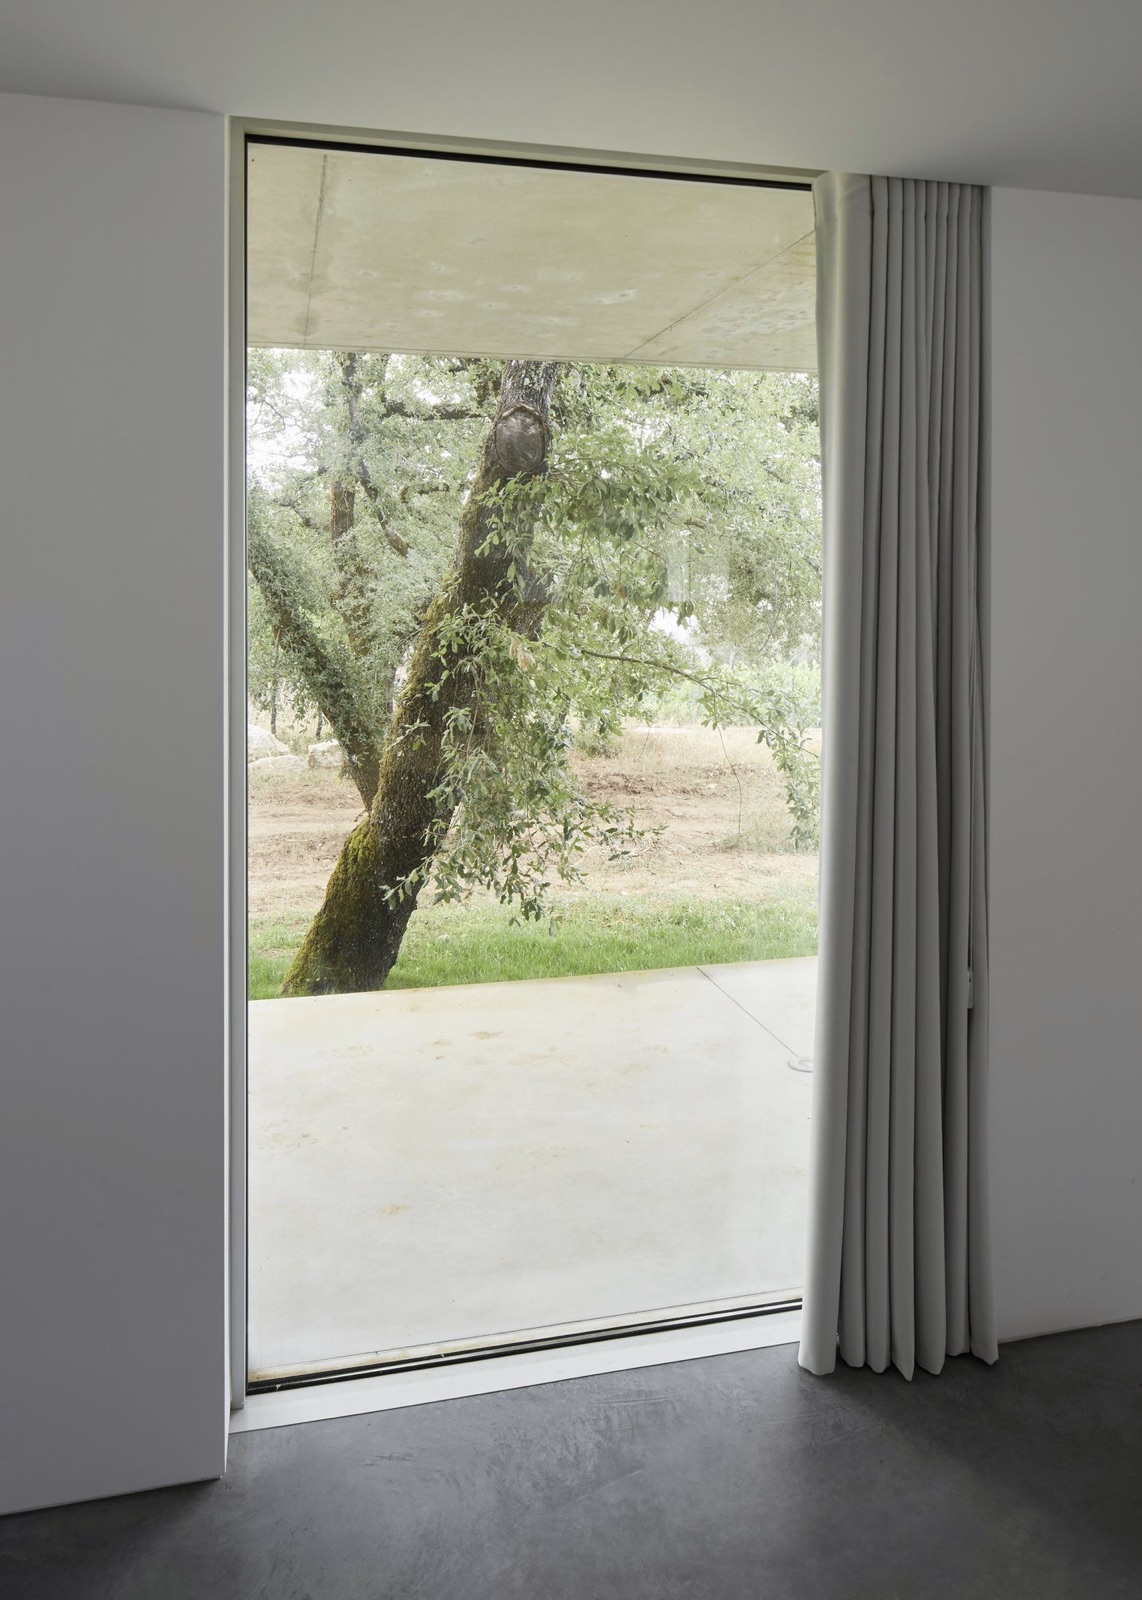 Floor to ceiling window fanu house by bruno dias - What are floor to ceiling windows called ...